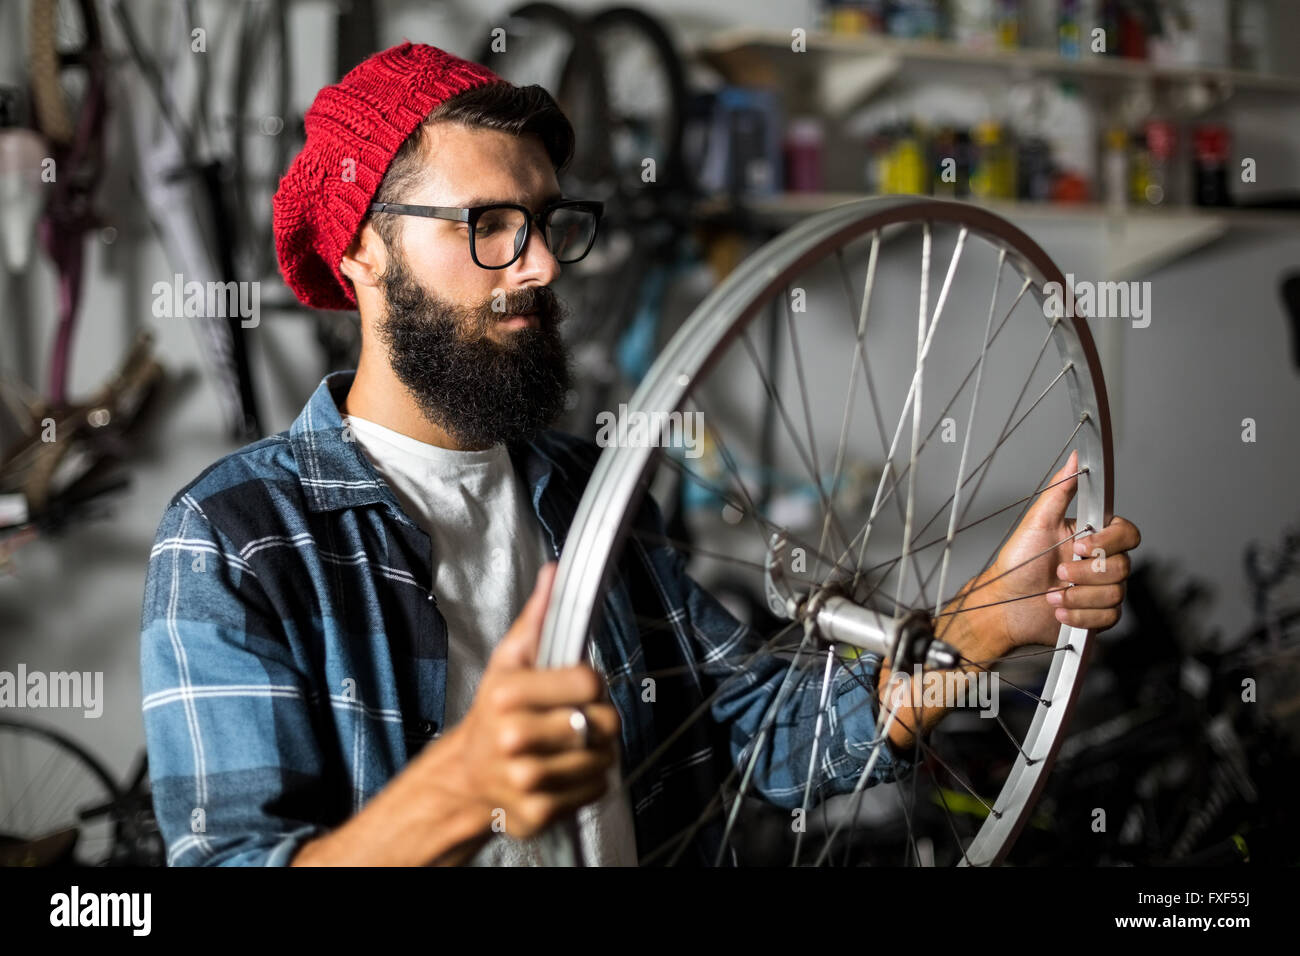 Bike mechanic checking at wheel - Stock Image